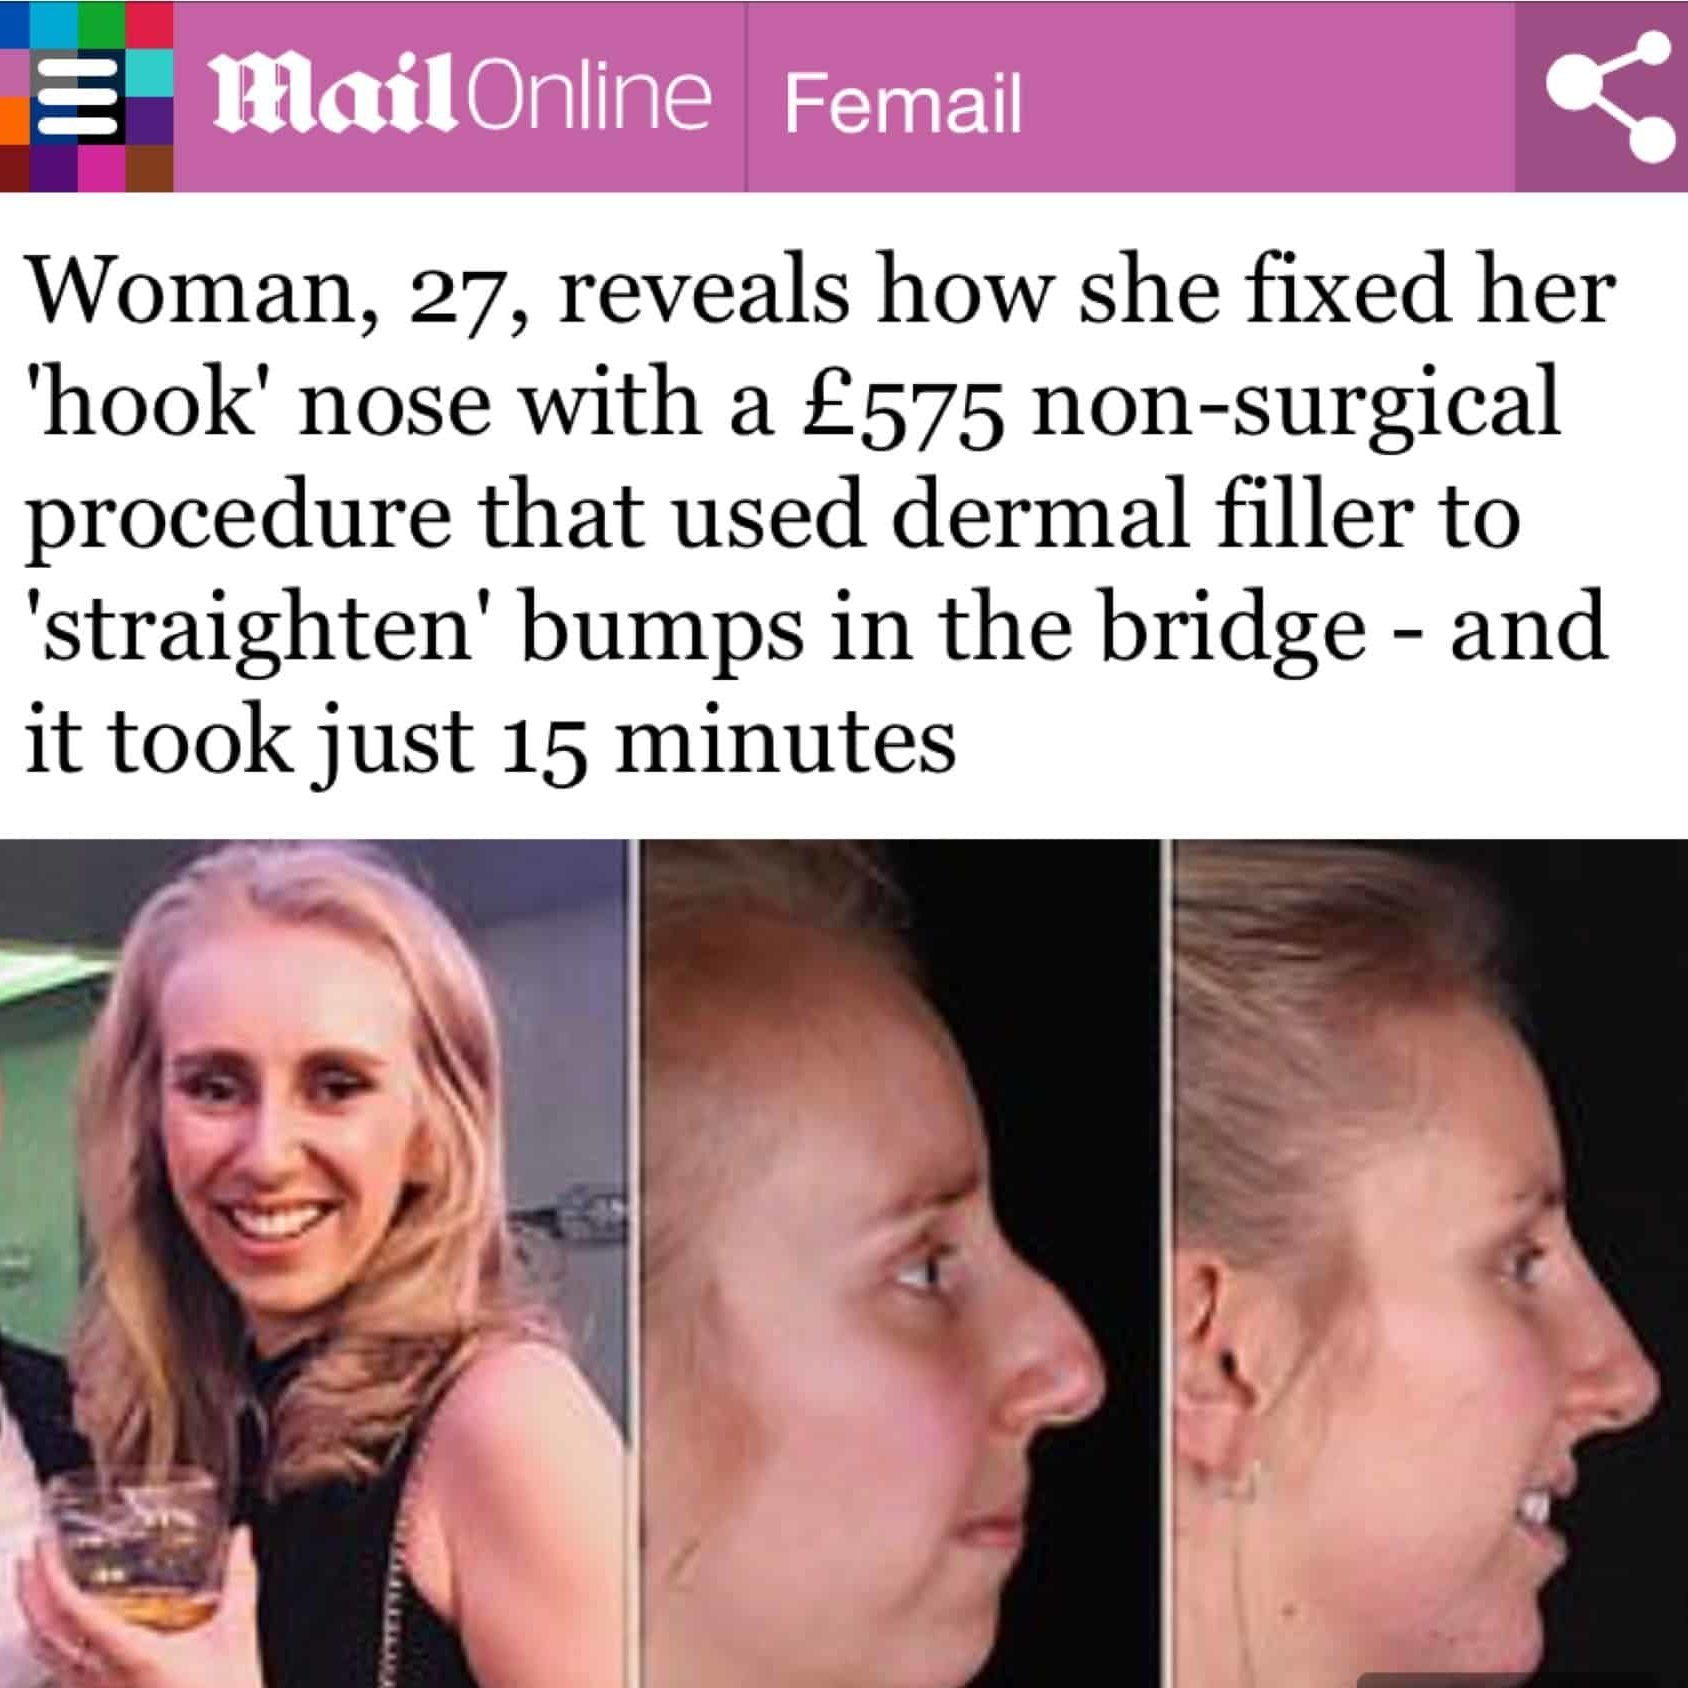 Mail Online Nose